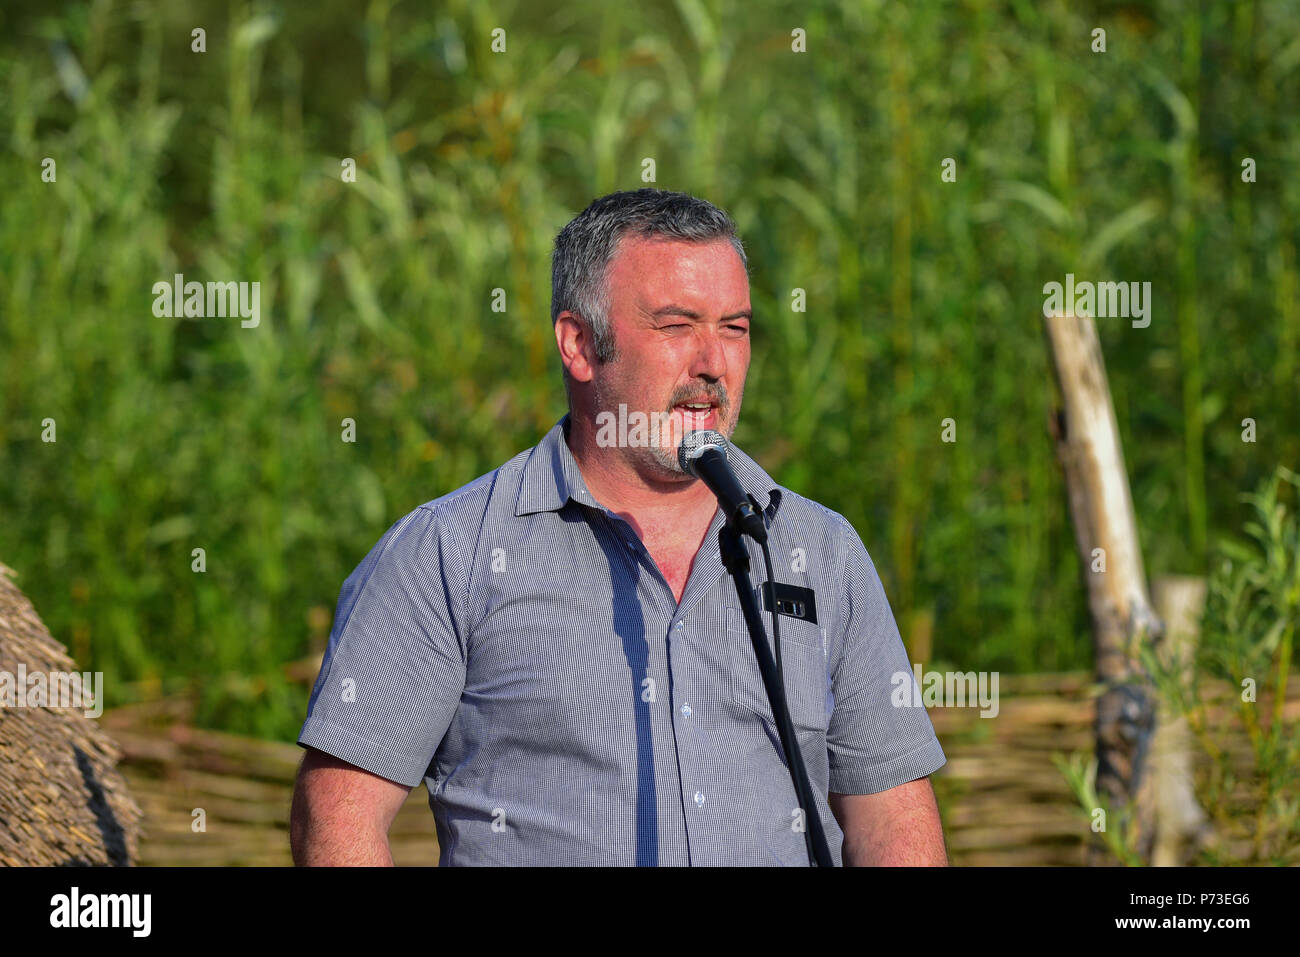 County Tyrone, UK. 4th July, 2018. Local Save our Sperrins Activist Sean Tracey speaks to gathered members of  Activists groups and community members fighting against the proposed destruction of the Sperrin Mountains in County Tyrone.  County Tyrone: UK:4th July 2018 Credit: Mark Winter/Alamy Live News - Stock Image